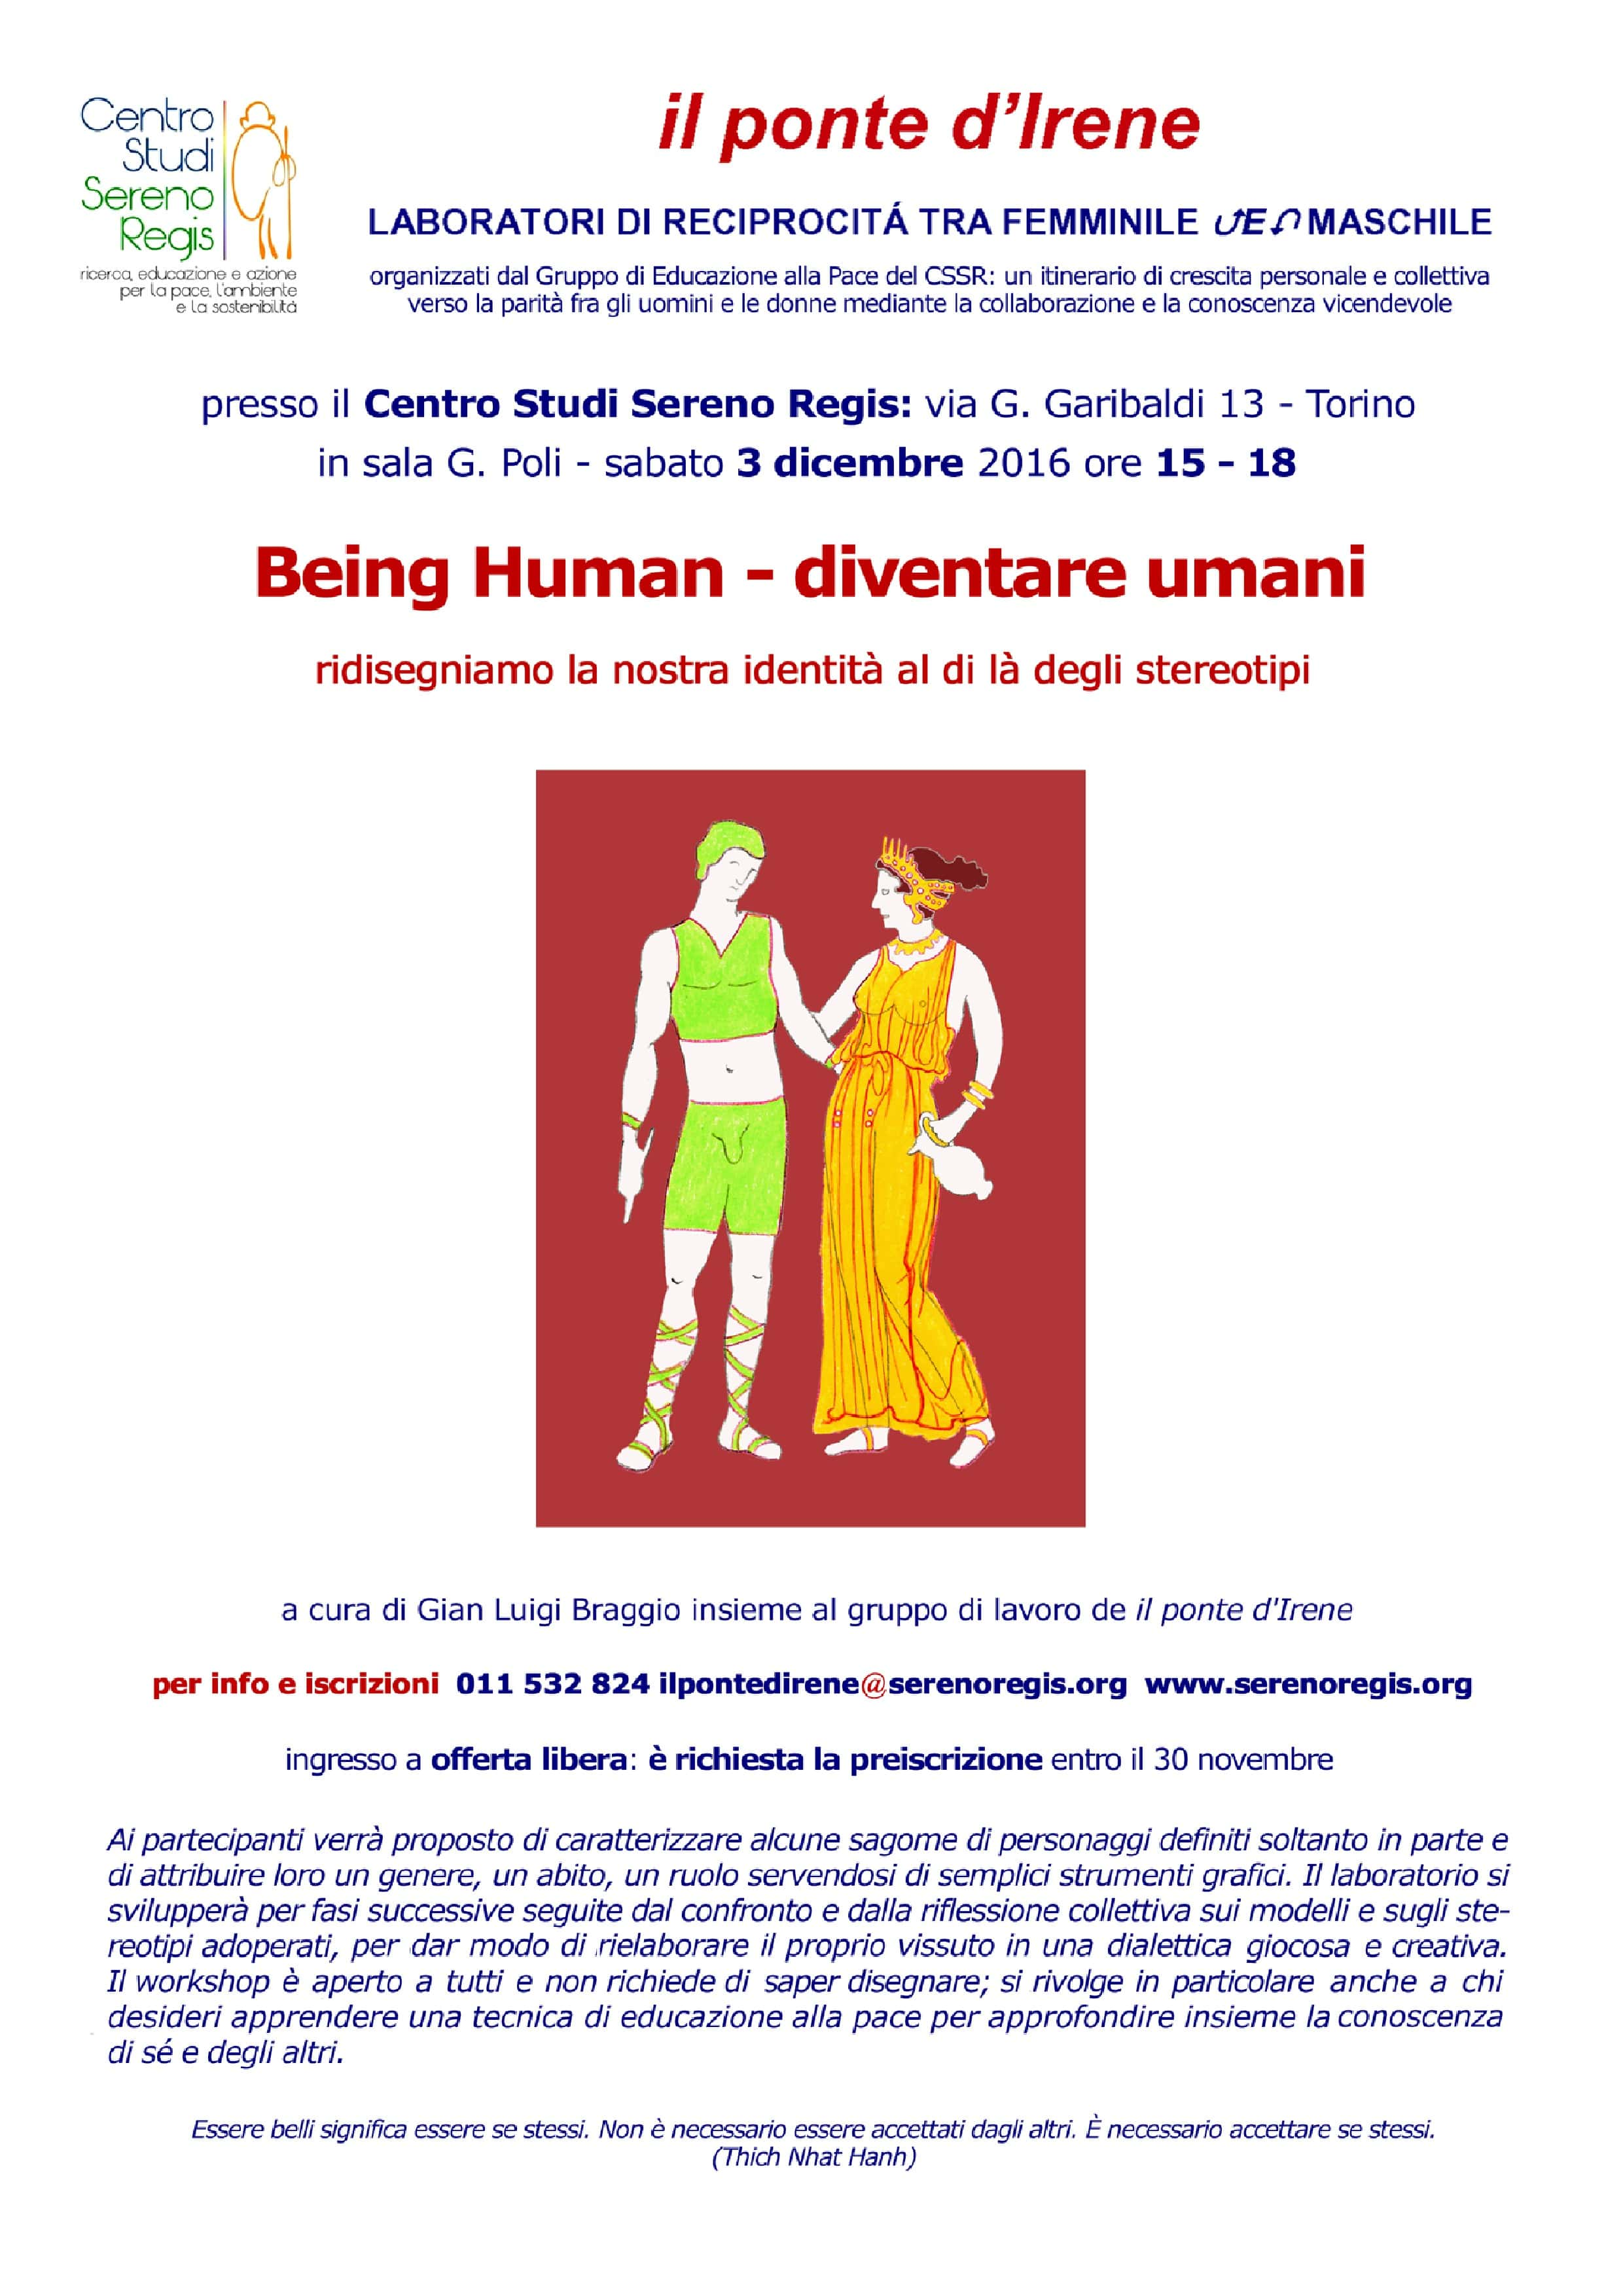 ipd_i-22-being-human-3_12_2016-2-page-0-min